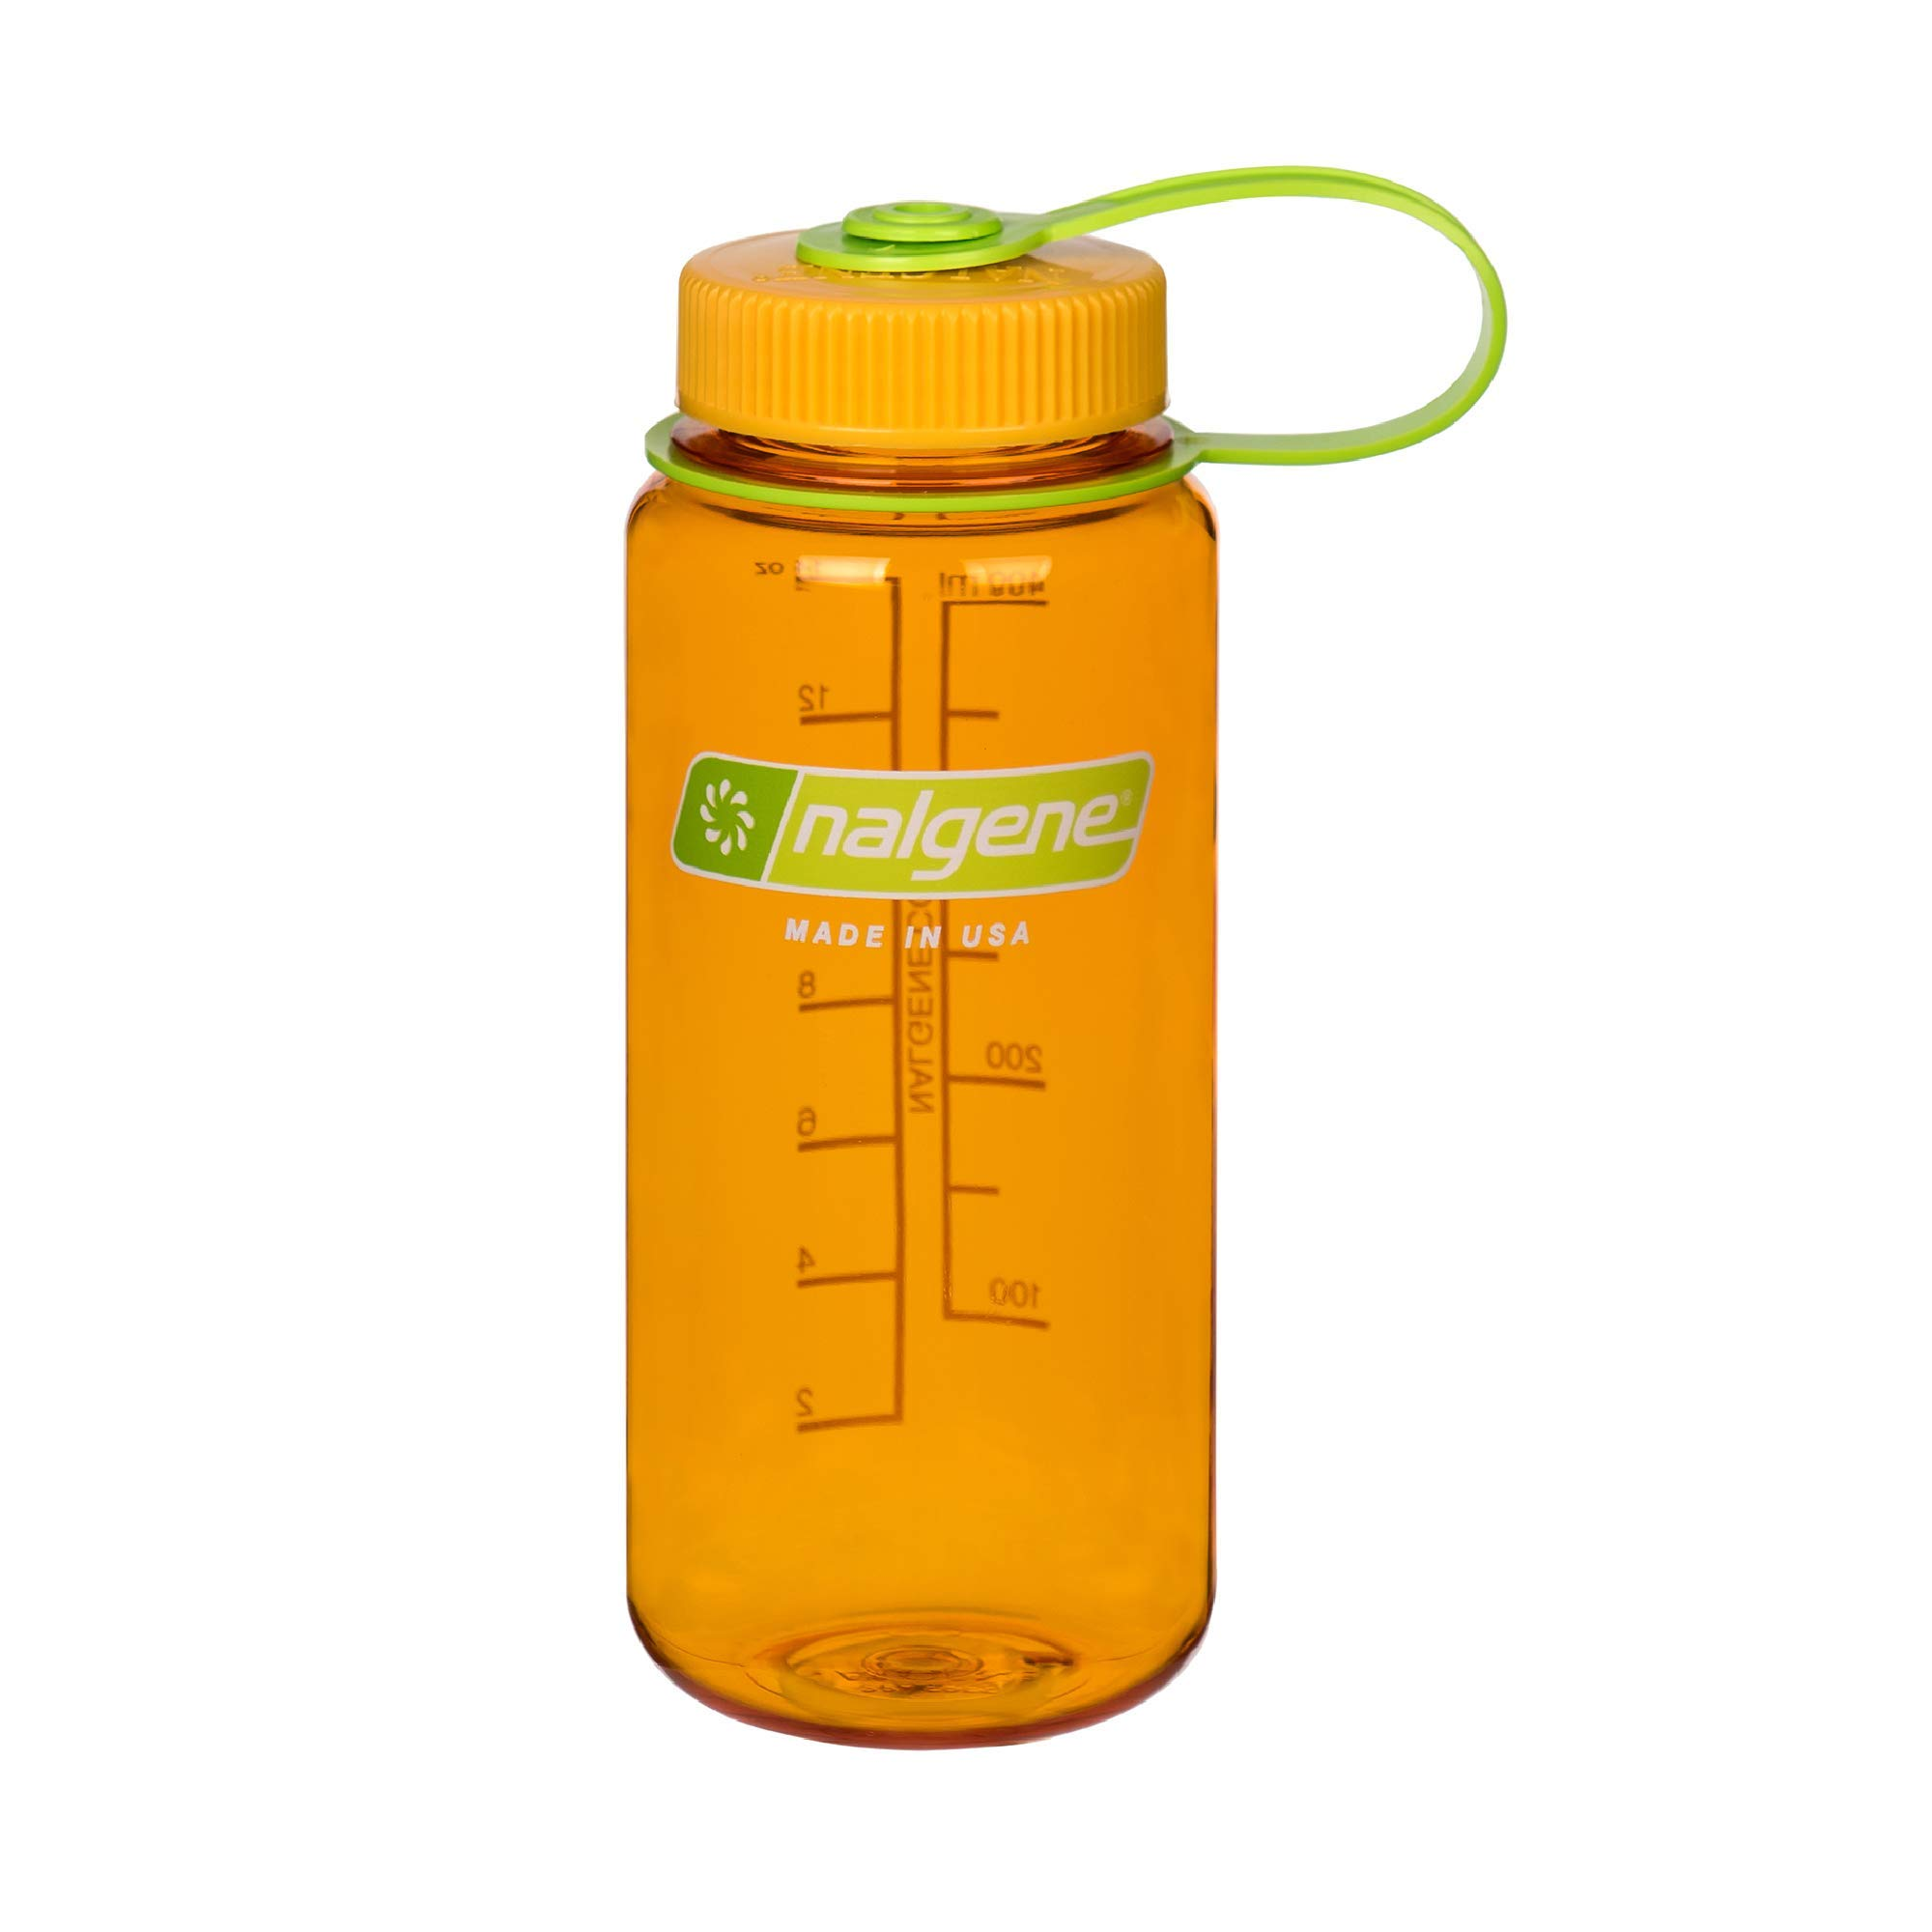 Nalgene Tritan Wide Mouth BPA-Free Water Bottle, Clementine, 16 oz (342071)